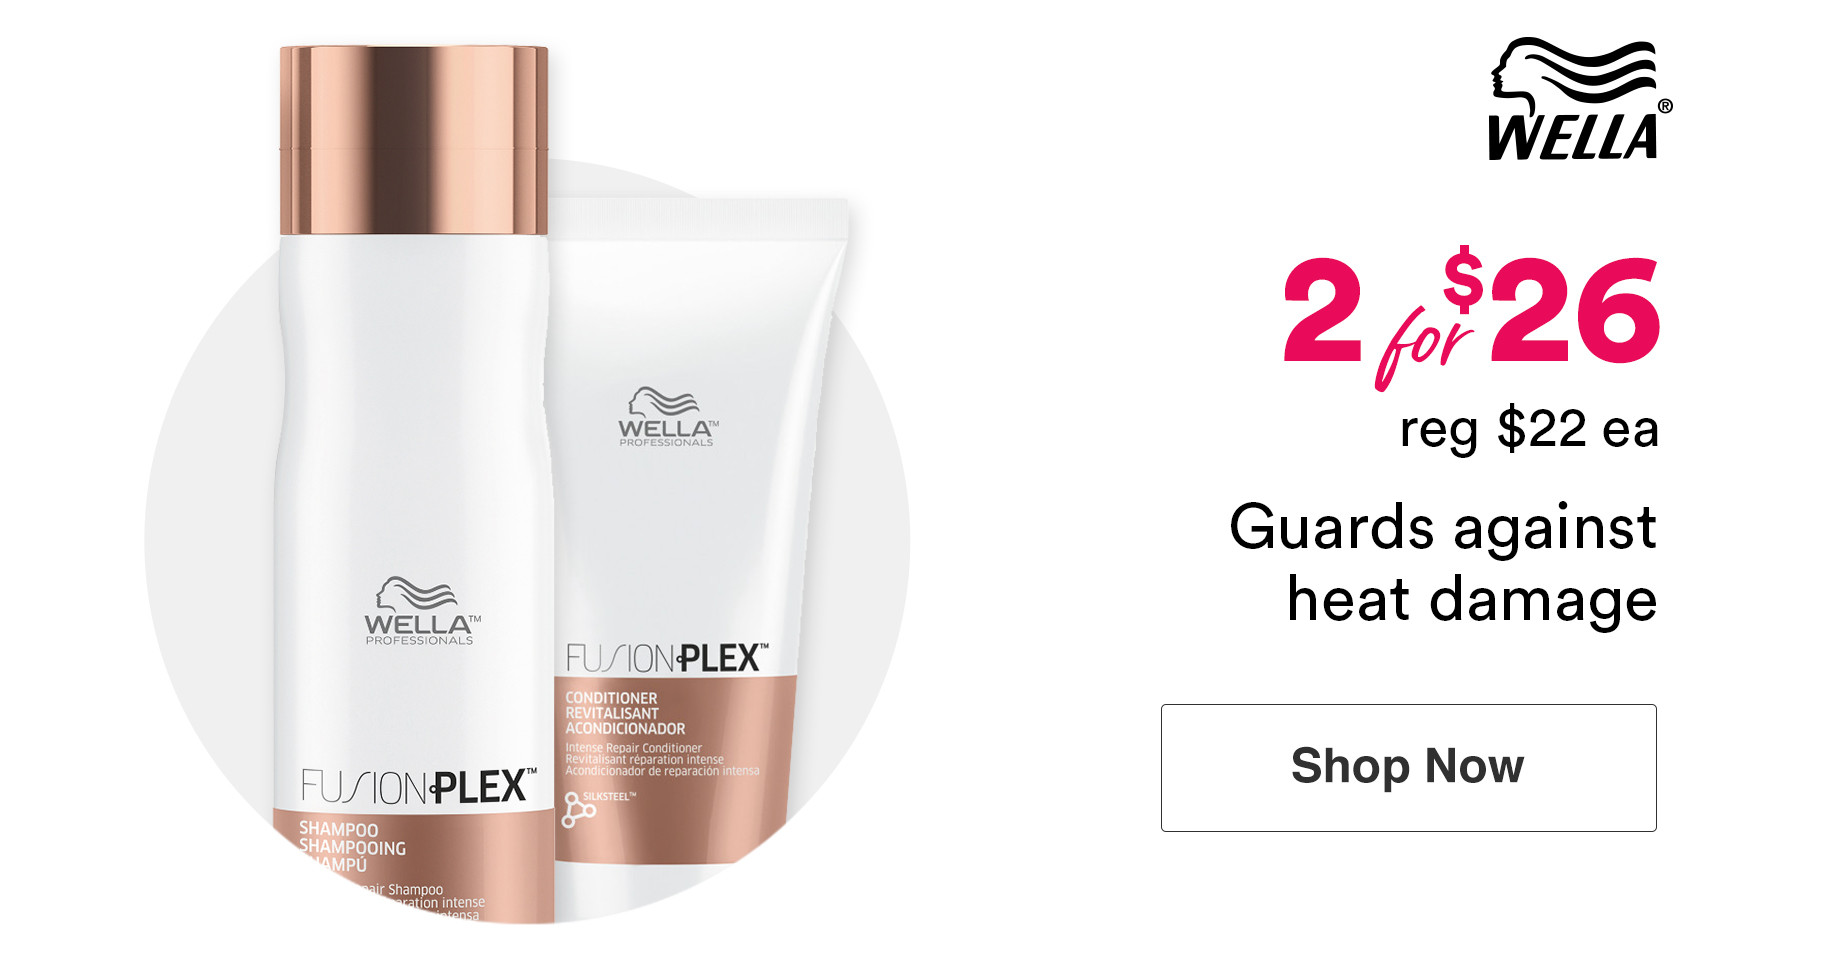 Wella Fusionplex Shampoos and Conditioners are now 2 for $26